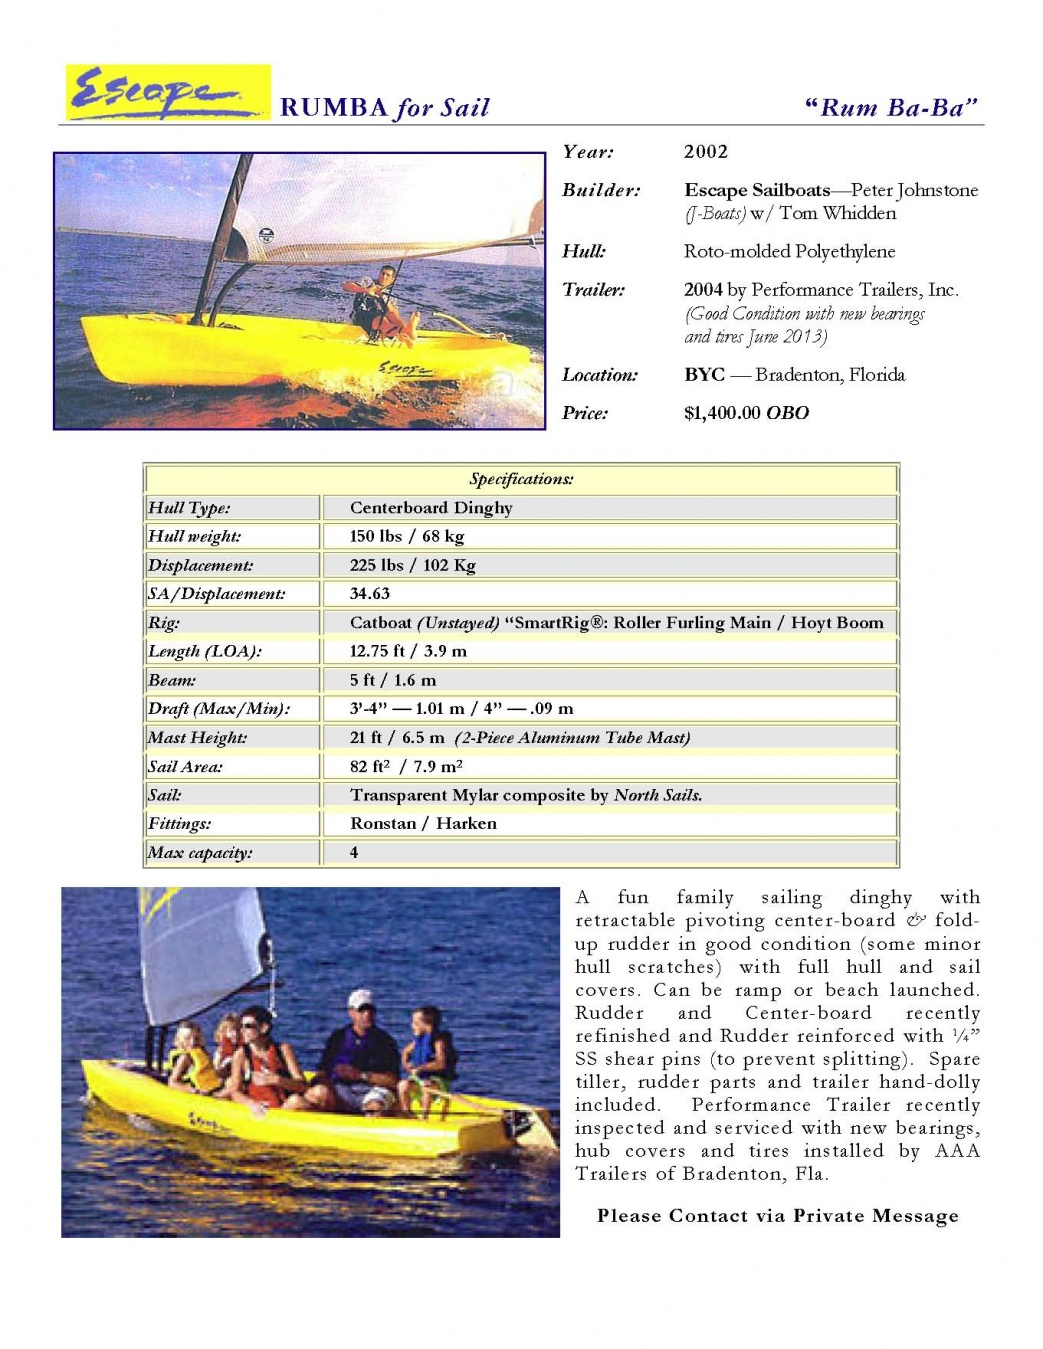 Finding a good small boat for day sailing, trailering, or